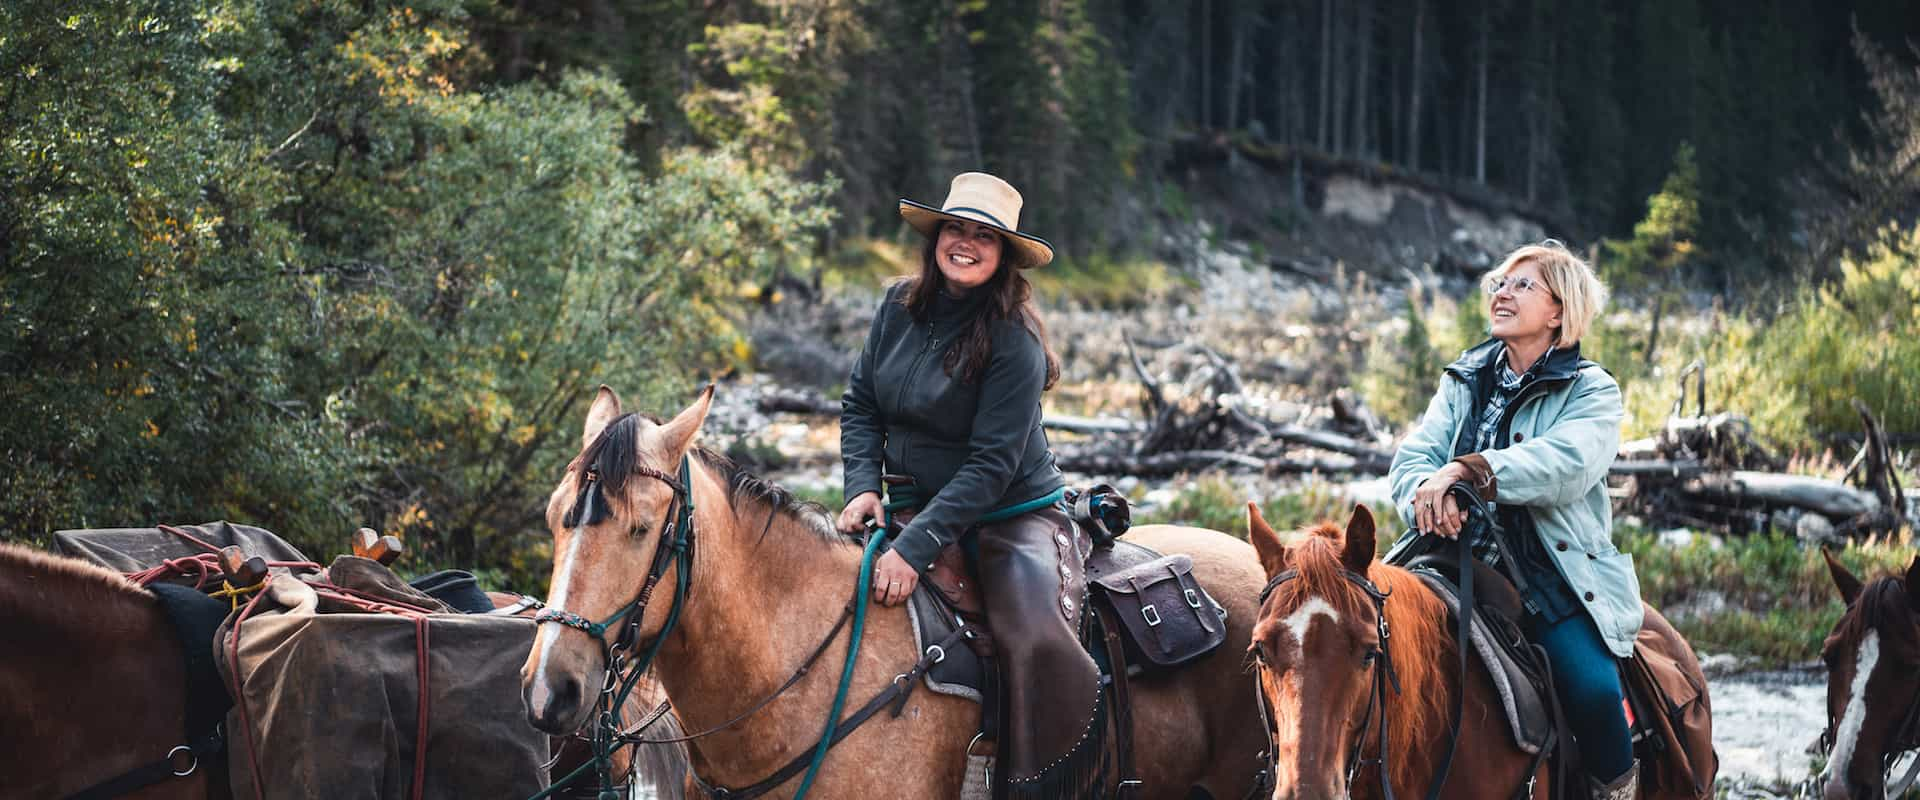 Ride into Banff's backcountry on a horseback vacation